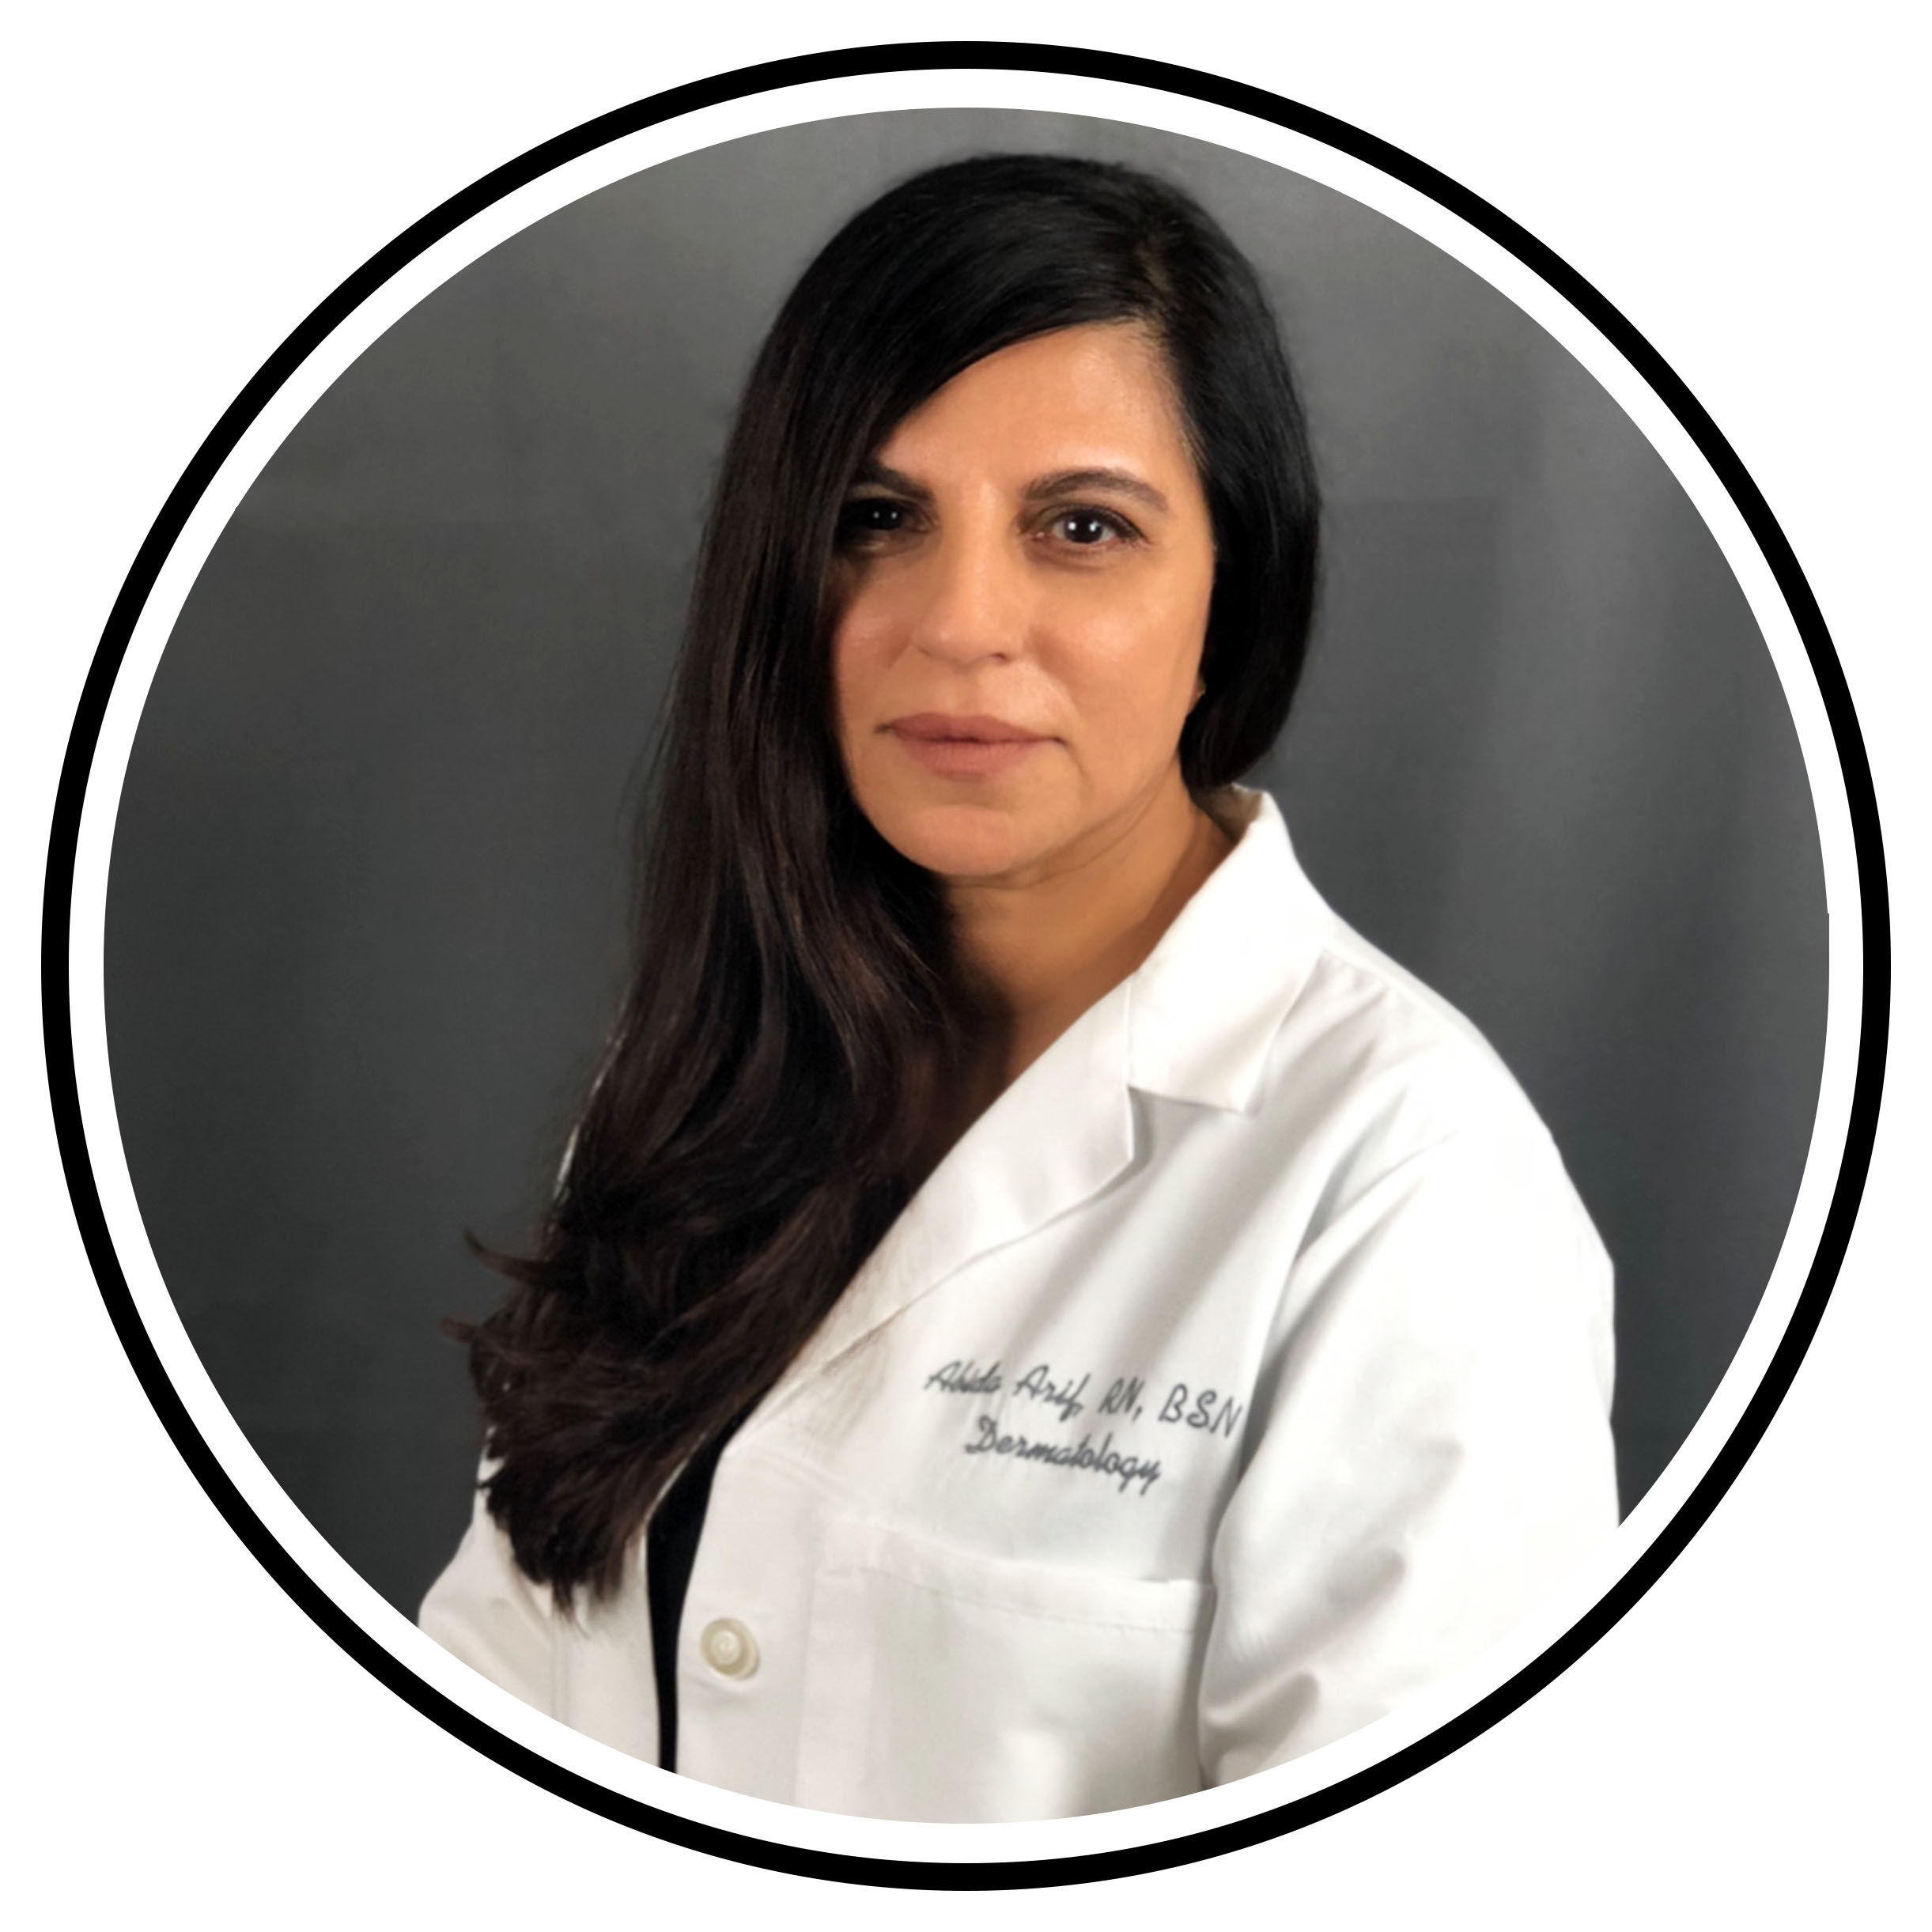 Abida, R.N. - Aesthetic NurseAbida Arif RN, BSN has been an Aesthetic Nurse at Encino Dermatology & Laser since 2005.She got her Bachelor of Science in Nursing from Middlesex University in London.She has 14 years of experience in treatment of patients including laser treatments, skin care, botox, cosmetic fillers, remedies for scarring, acne and aging skin.Abida has been working with Dr Alex Khadavi for 14 years. Her goal is to help people feel beautiful and refreshed. She's passionate about helping her clients to enhance and accentuate her patients natural beauty.She focuses on helping clients meet their goals by listening to their individual needs and then developing a tailored treatment plan.In her free time she enjoys time with her family ,loves to paint, listen to music and love watching movies.INSTAGRAM: @Abi.A0726